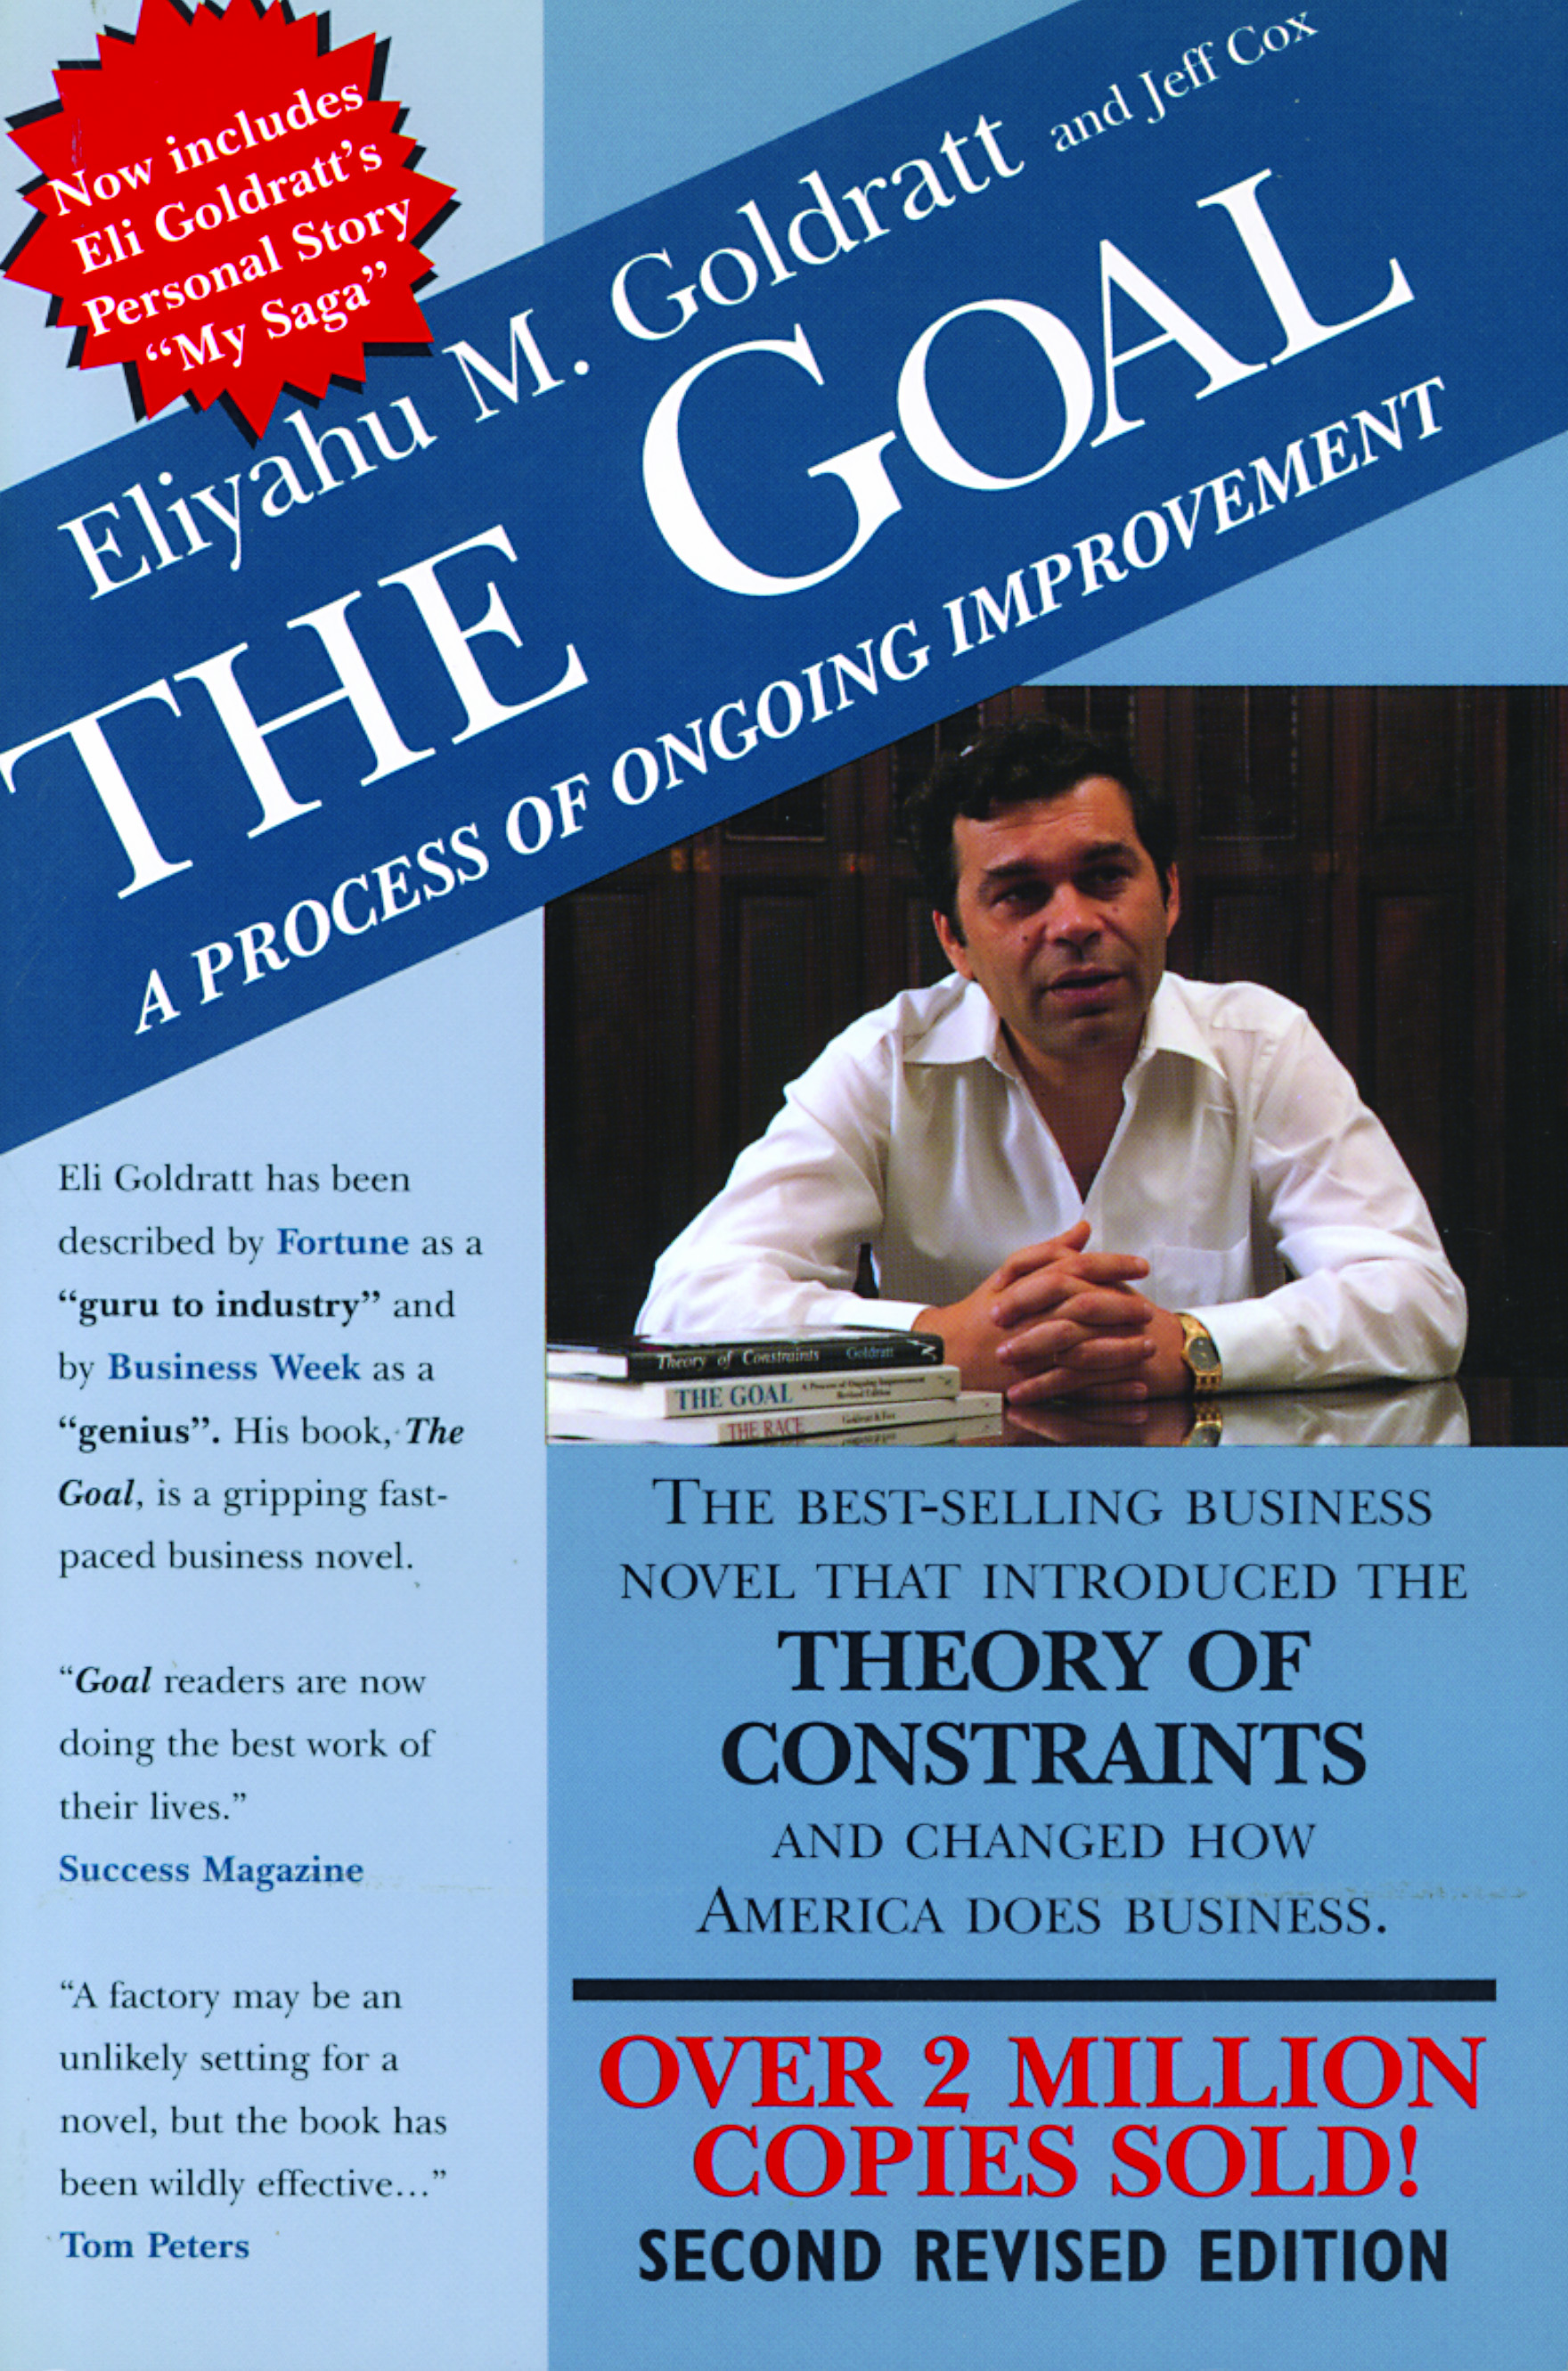 goal by goldratt Eliyahu goldratt's the goal is an entertaining novel and at the same time a thought provoking business book the story is about a plant manager, alex rogo, whose plant and marriage are going downhill.